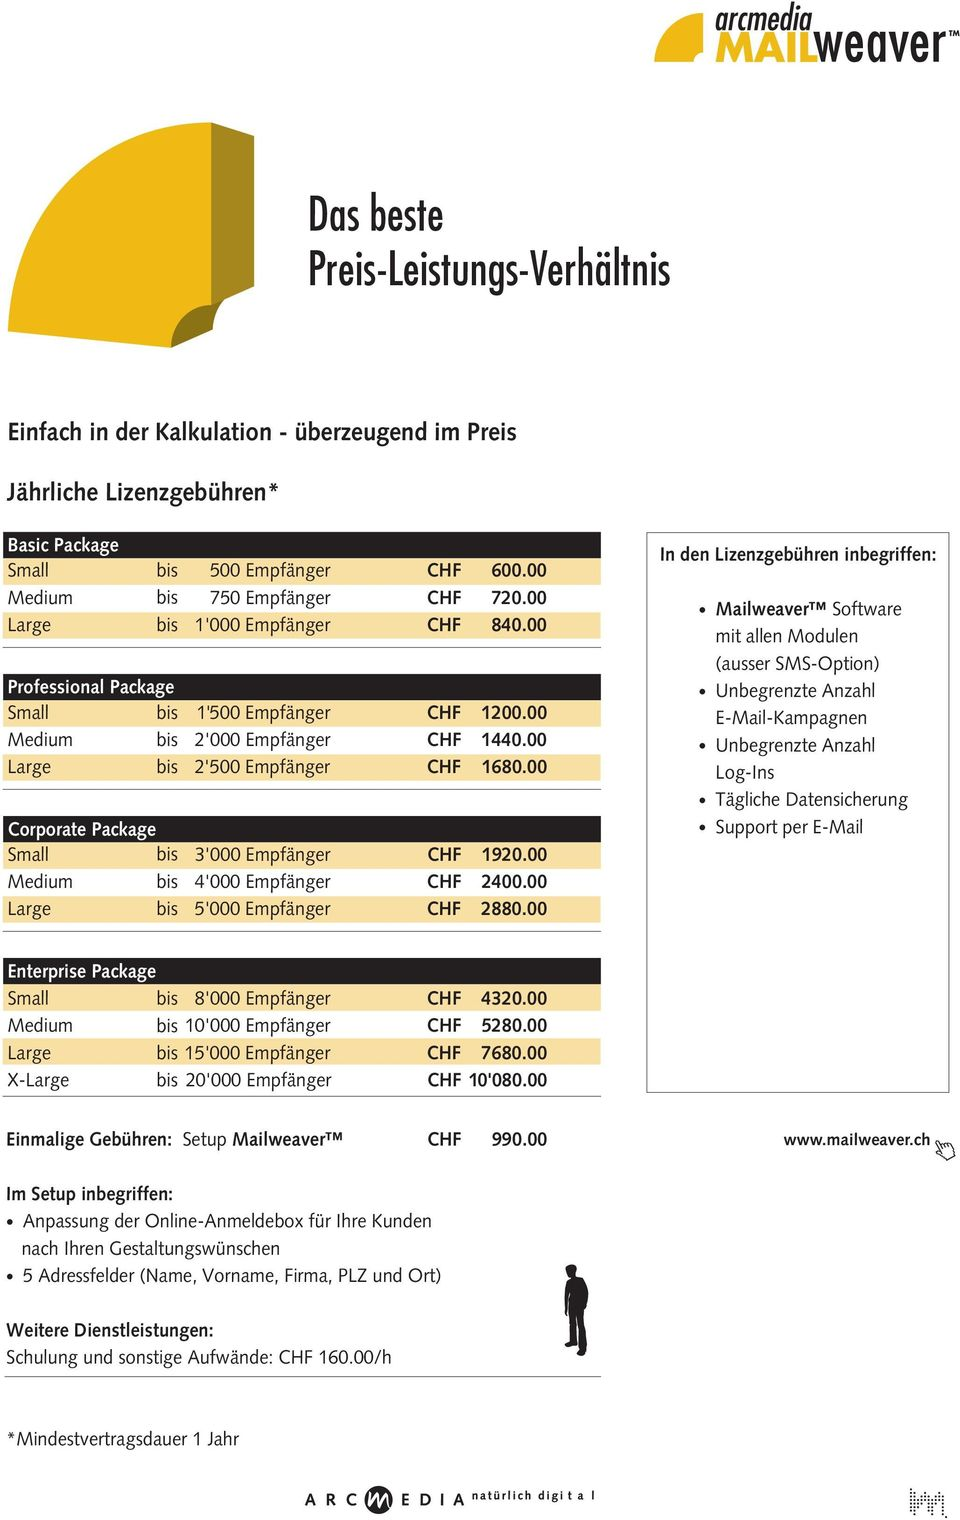 00 Corporate Package Small bis 3'000 Empfänger CHF 1920.00 Medium bis 4'000 Empfänger CHF 2400.00 Large bis 5'000 Empfänger CHF 2880.